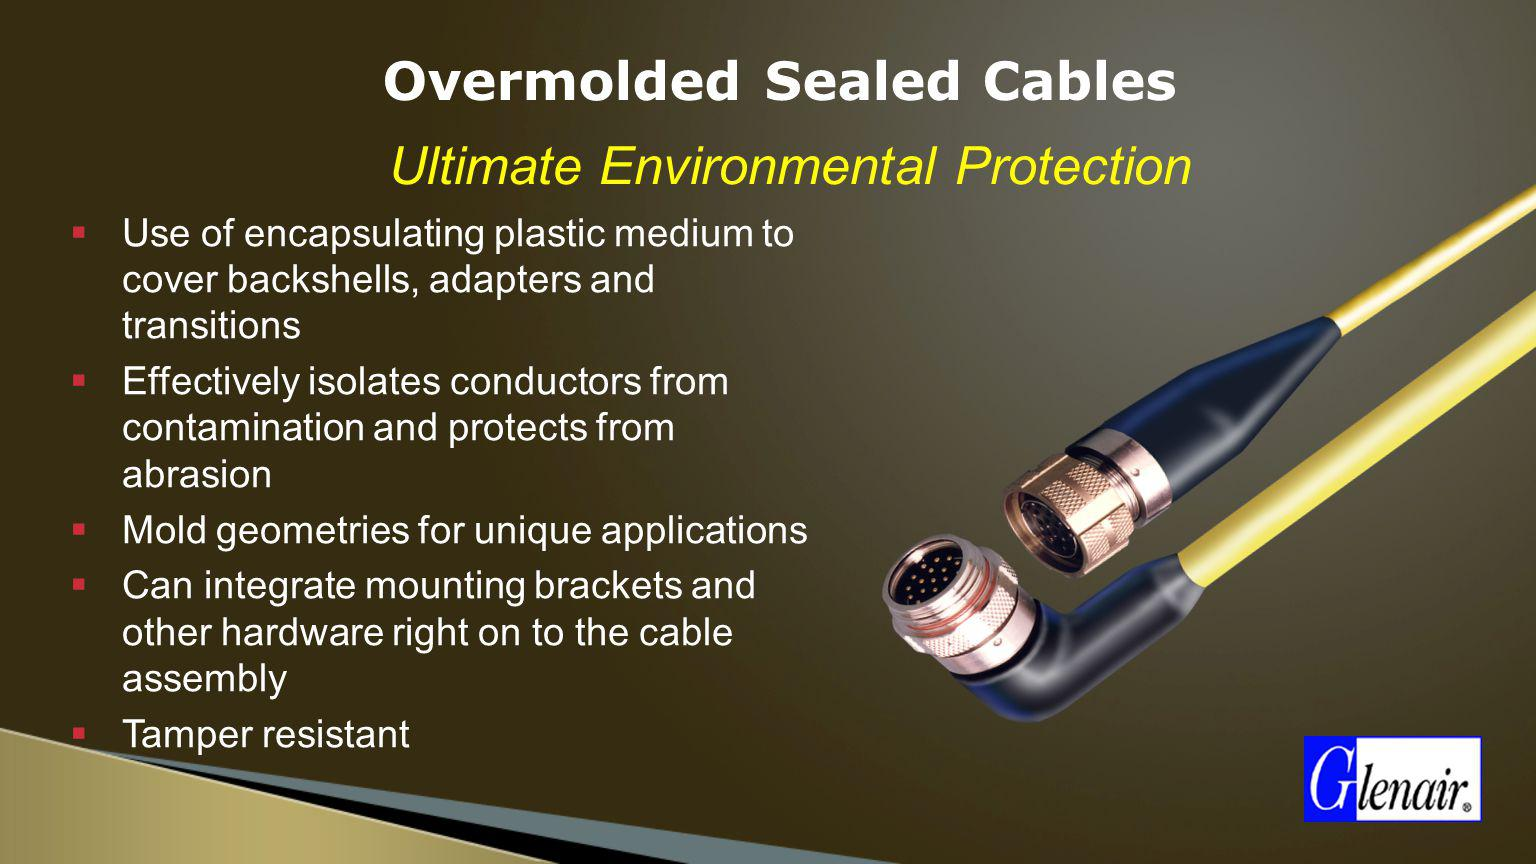 Overmolded Sealed Cables